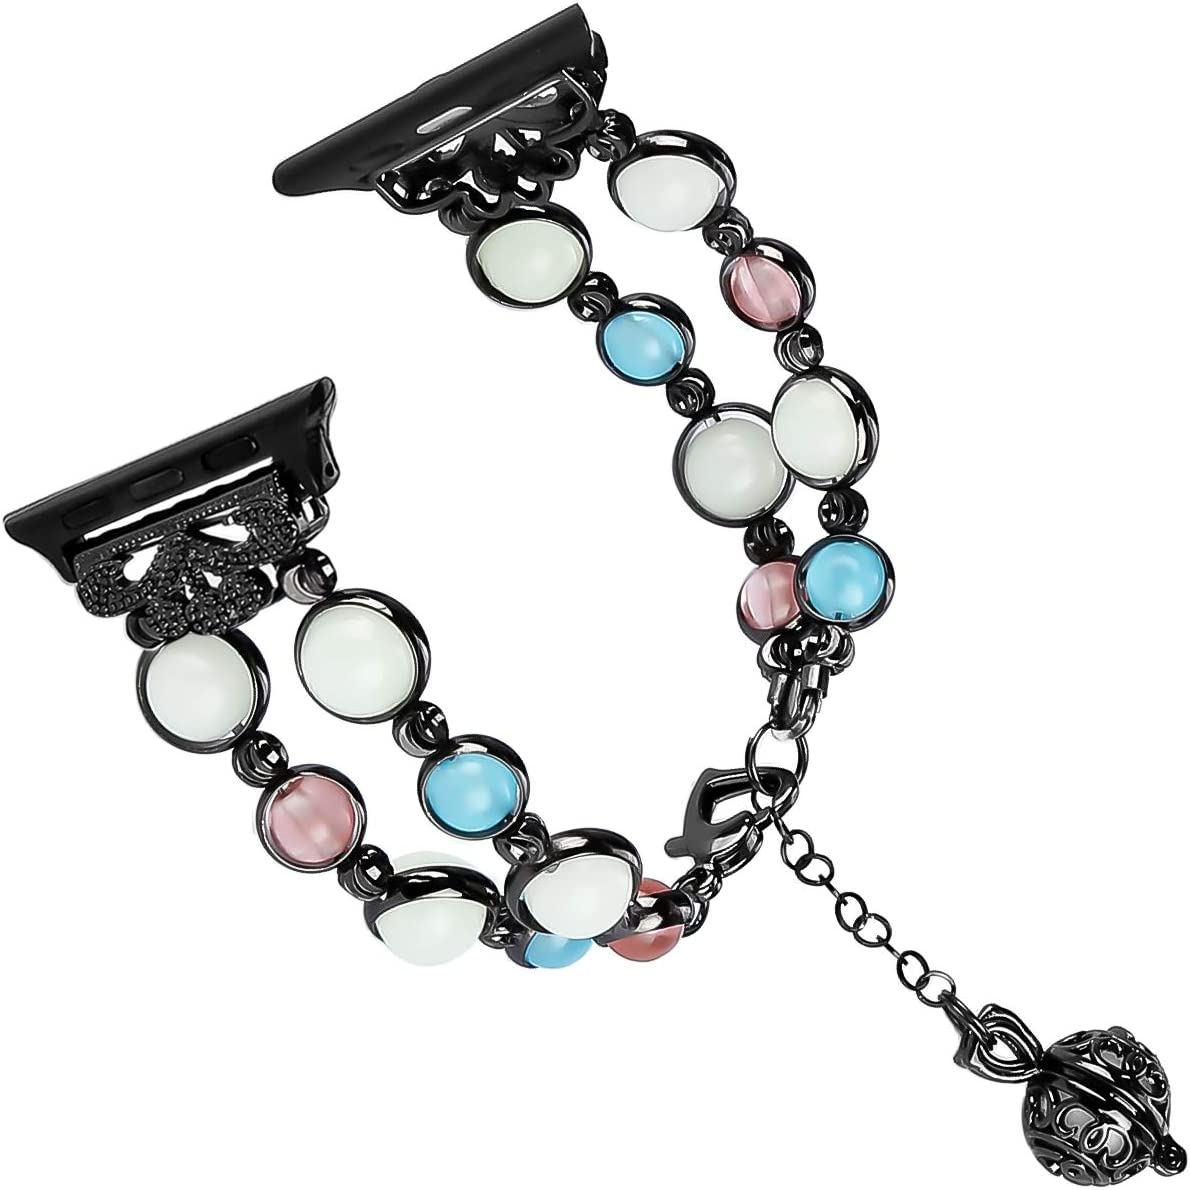 Tomazon Compatible Apple Watch Band 42mm 44mm Series 4/3/2/1, Unique Handmade Luminous Pearl Adjustable iWatch Bracelet Metal Link Wristband with Perfume Storage Pendant for Women Girl - Black